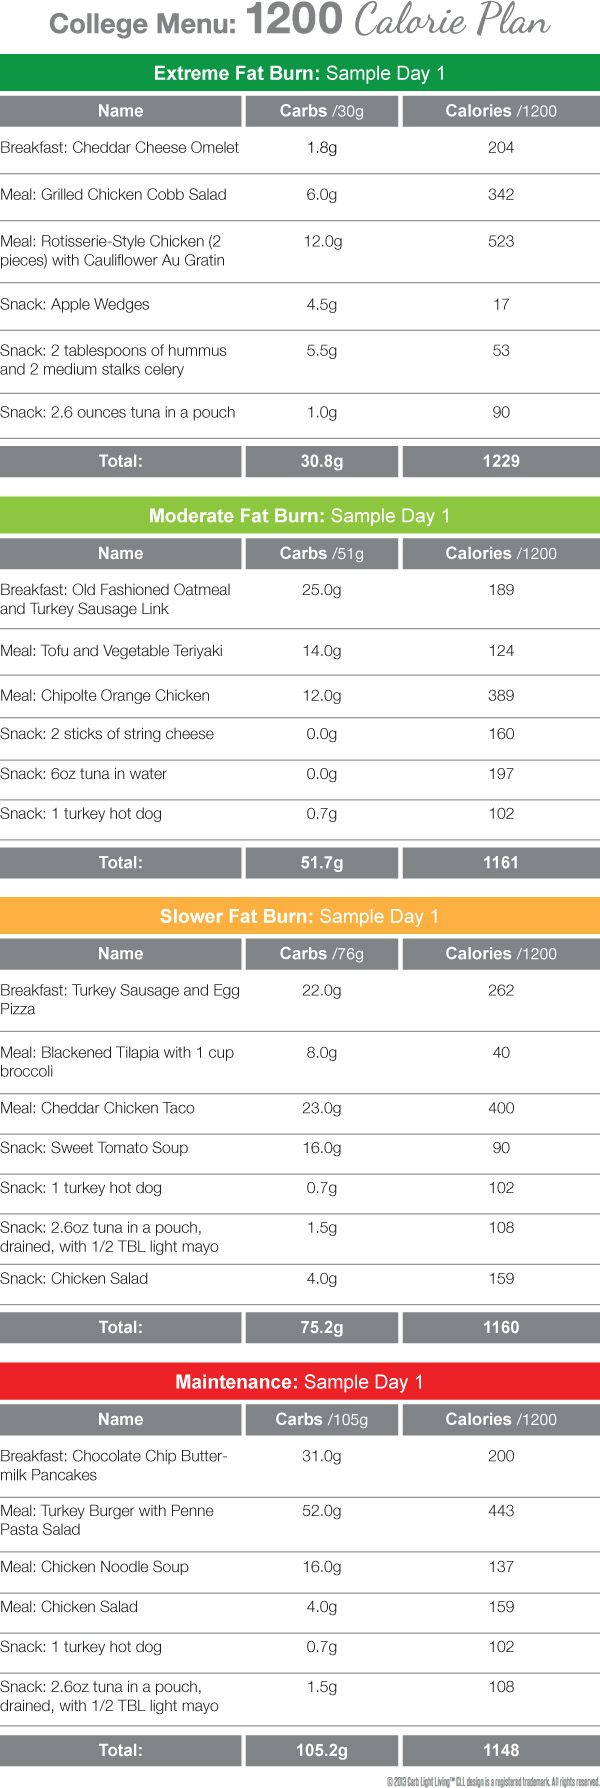 Daily Meal Plans: College Menu 1200 calorie menu